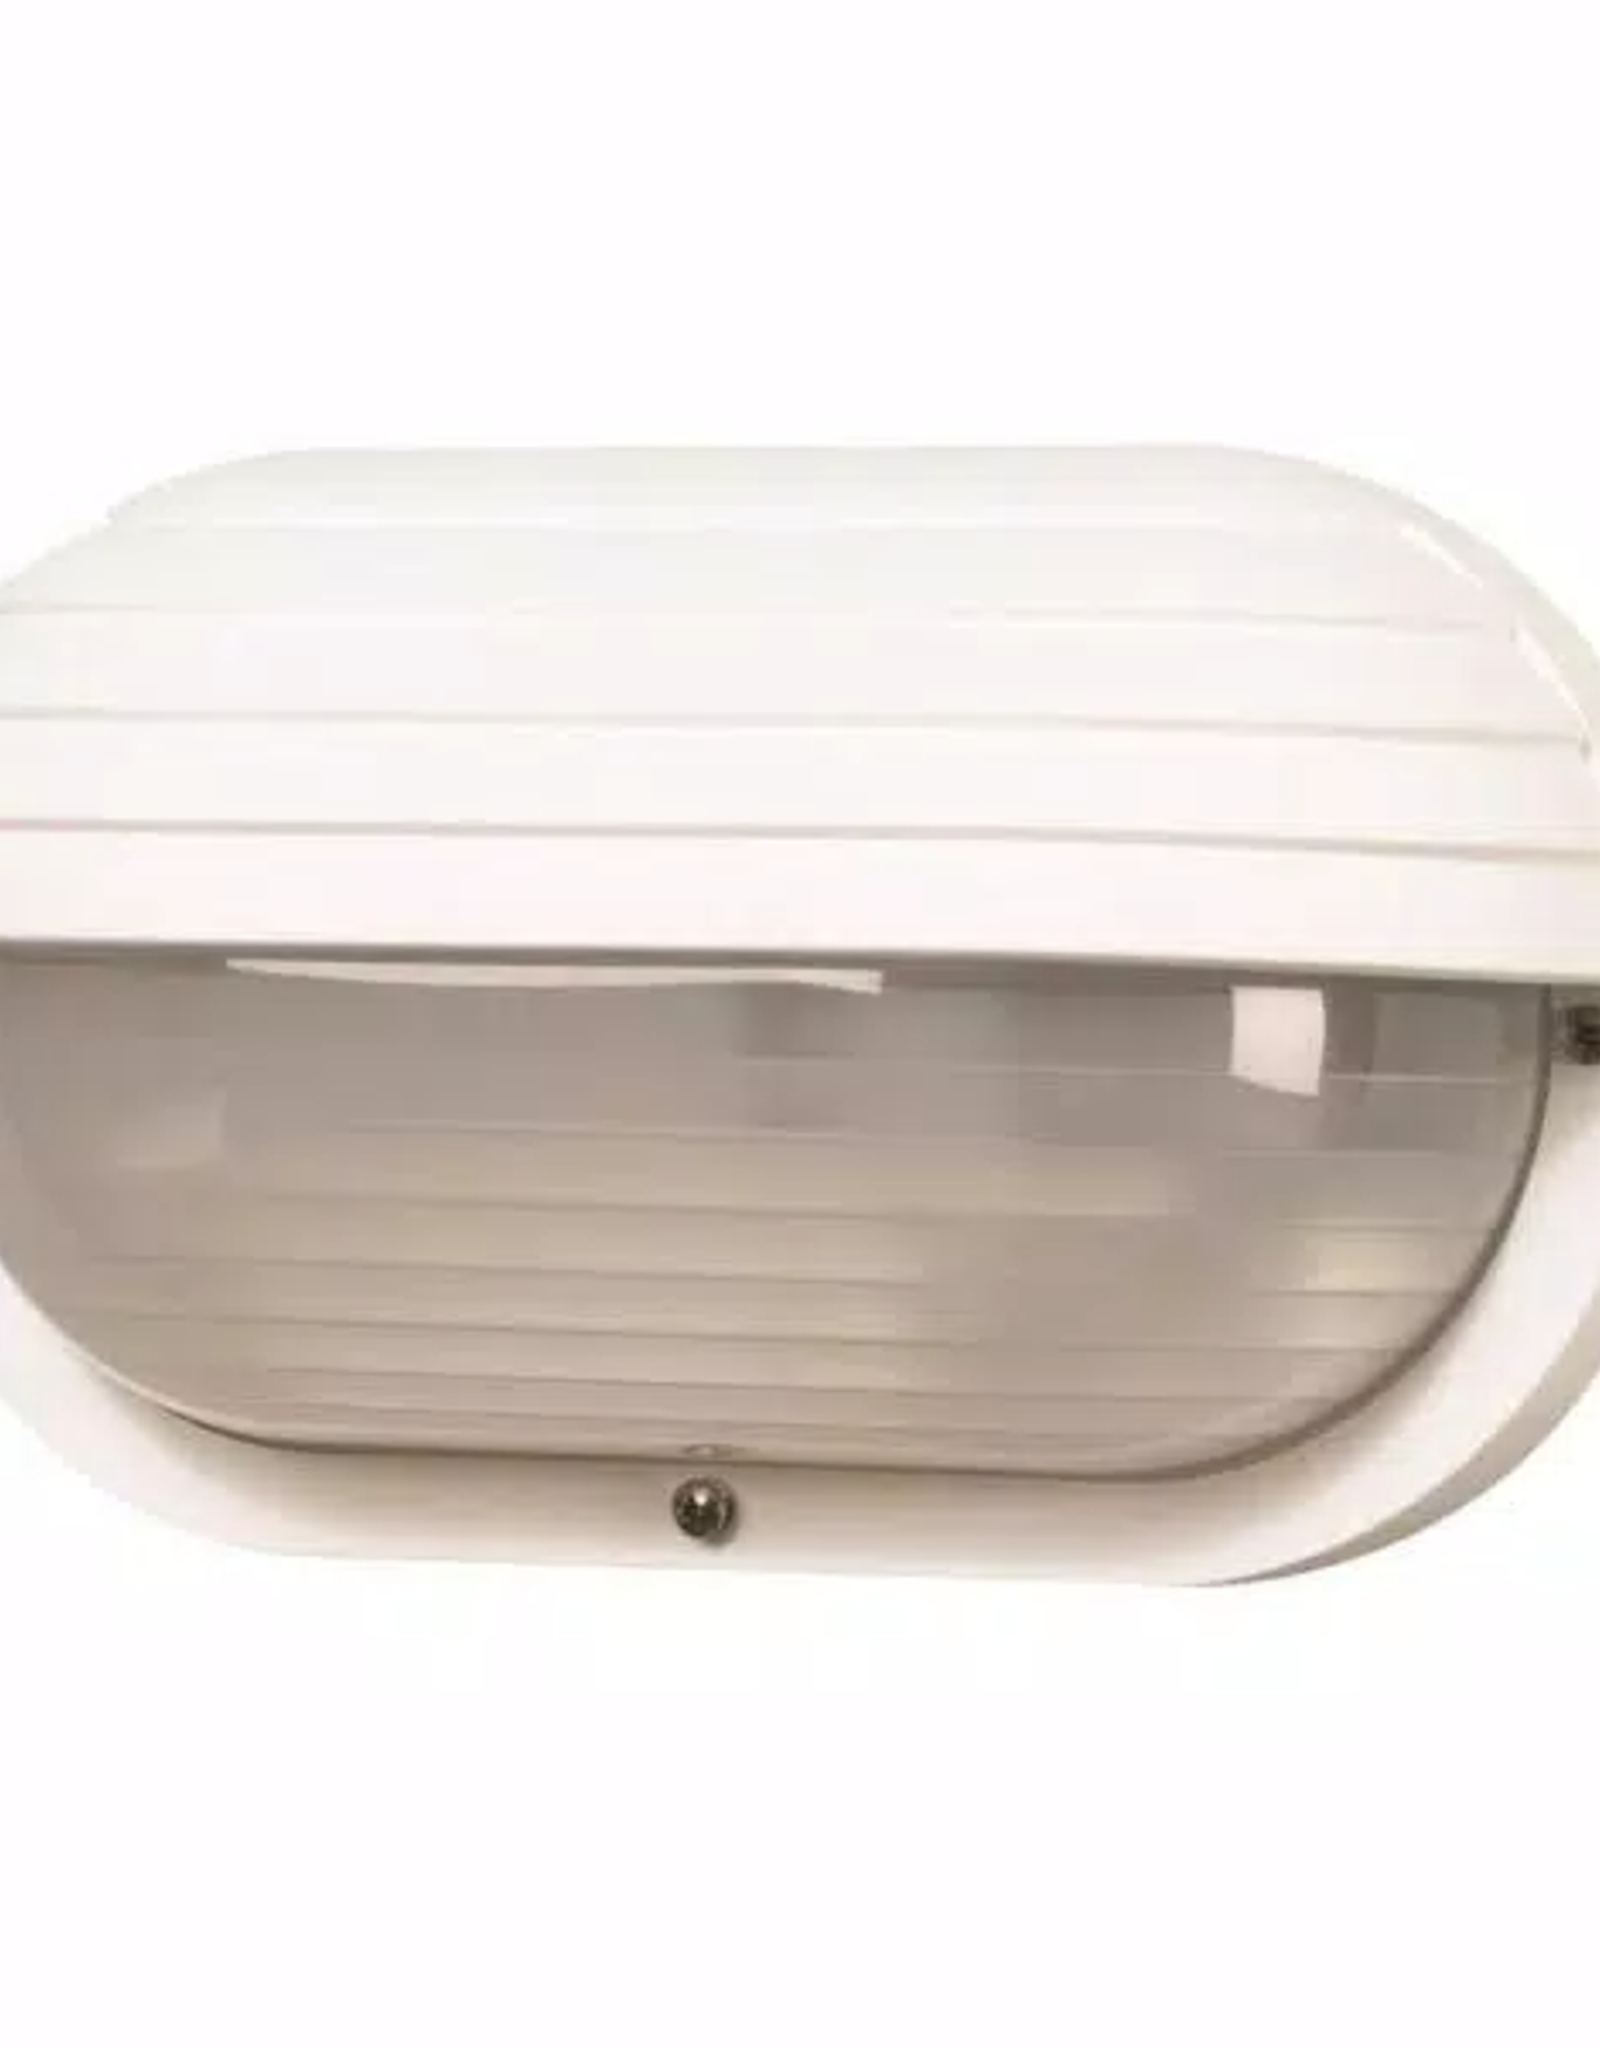 Nautical 1-Light White 4000K ENERGY STAR LED Outdoor Wall Mount Sconce with Eyelid & Durable Frosted Polycarbonate Lens